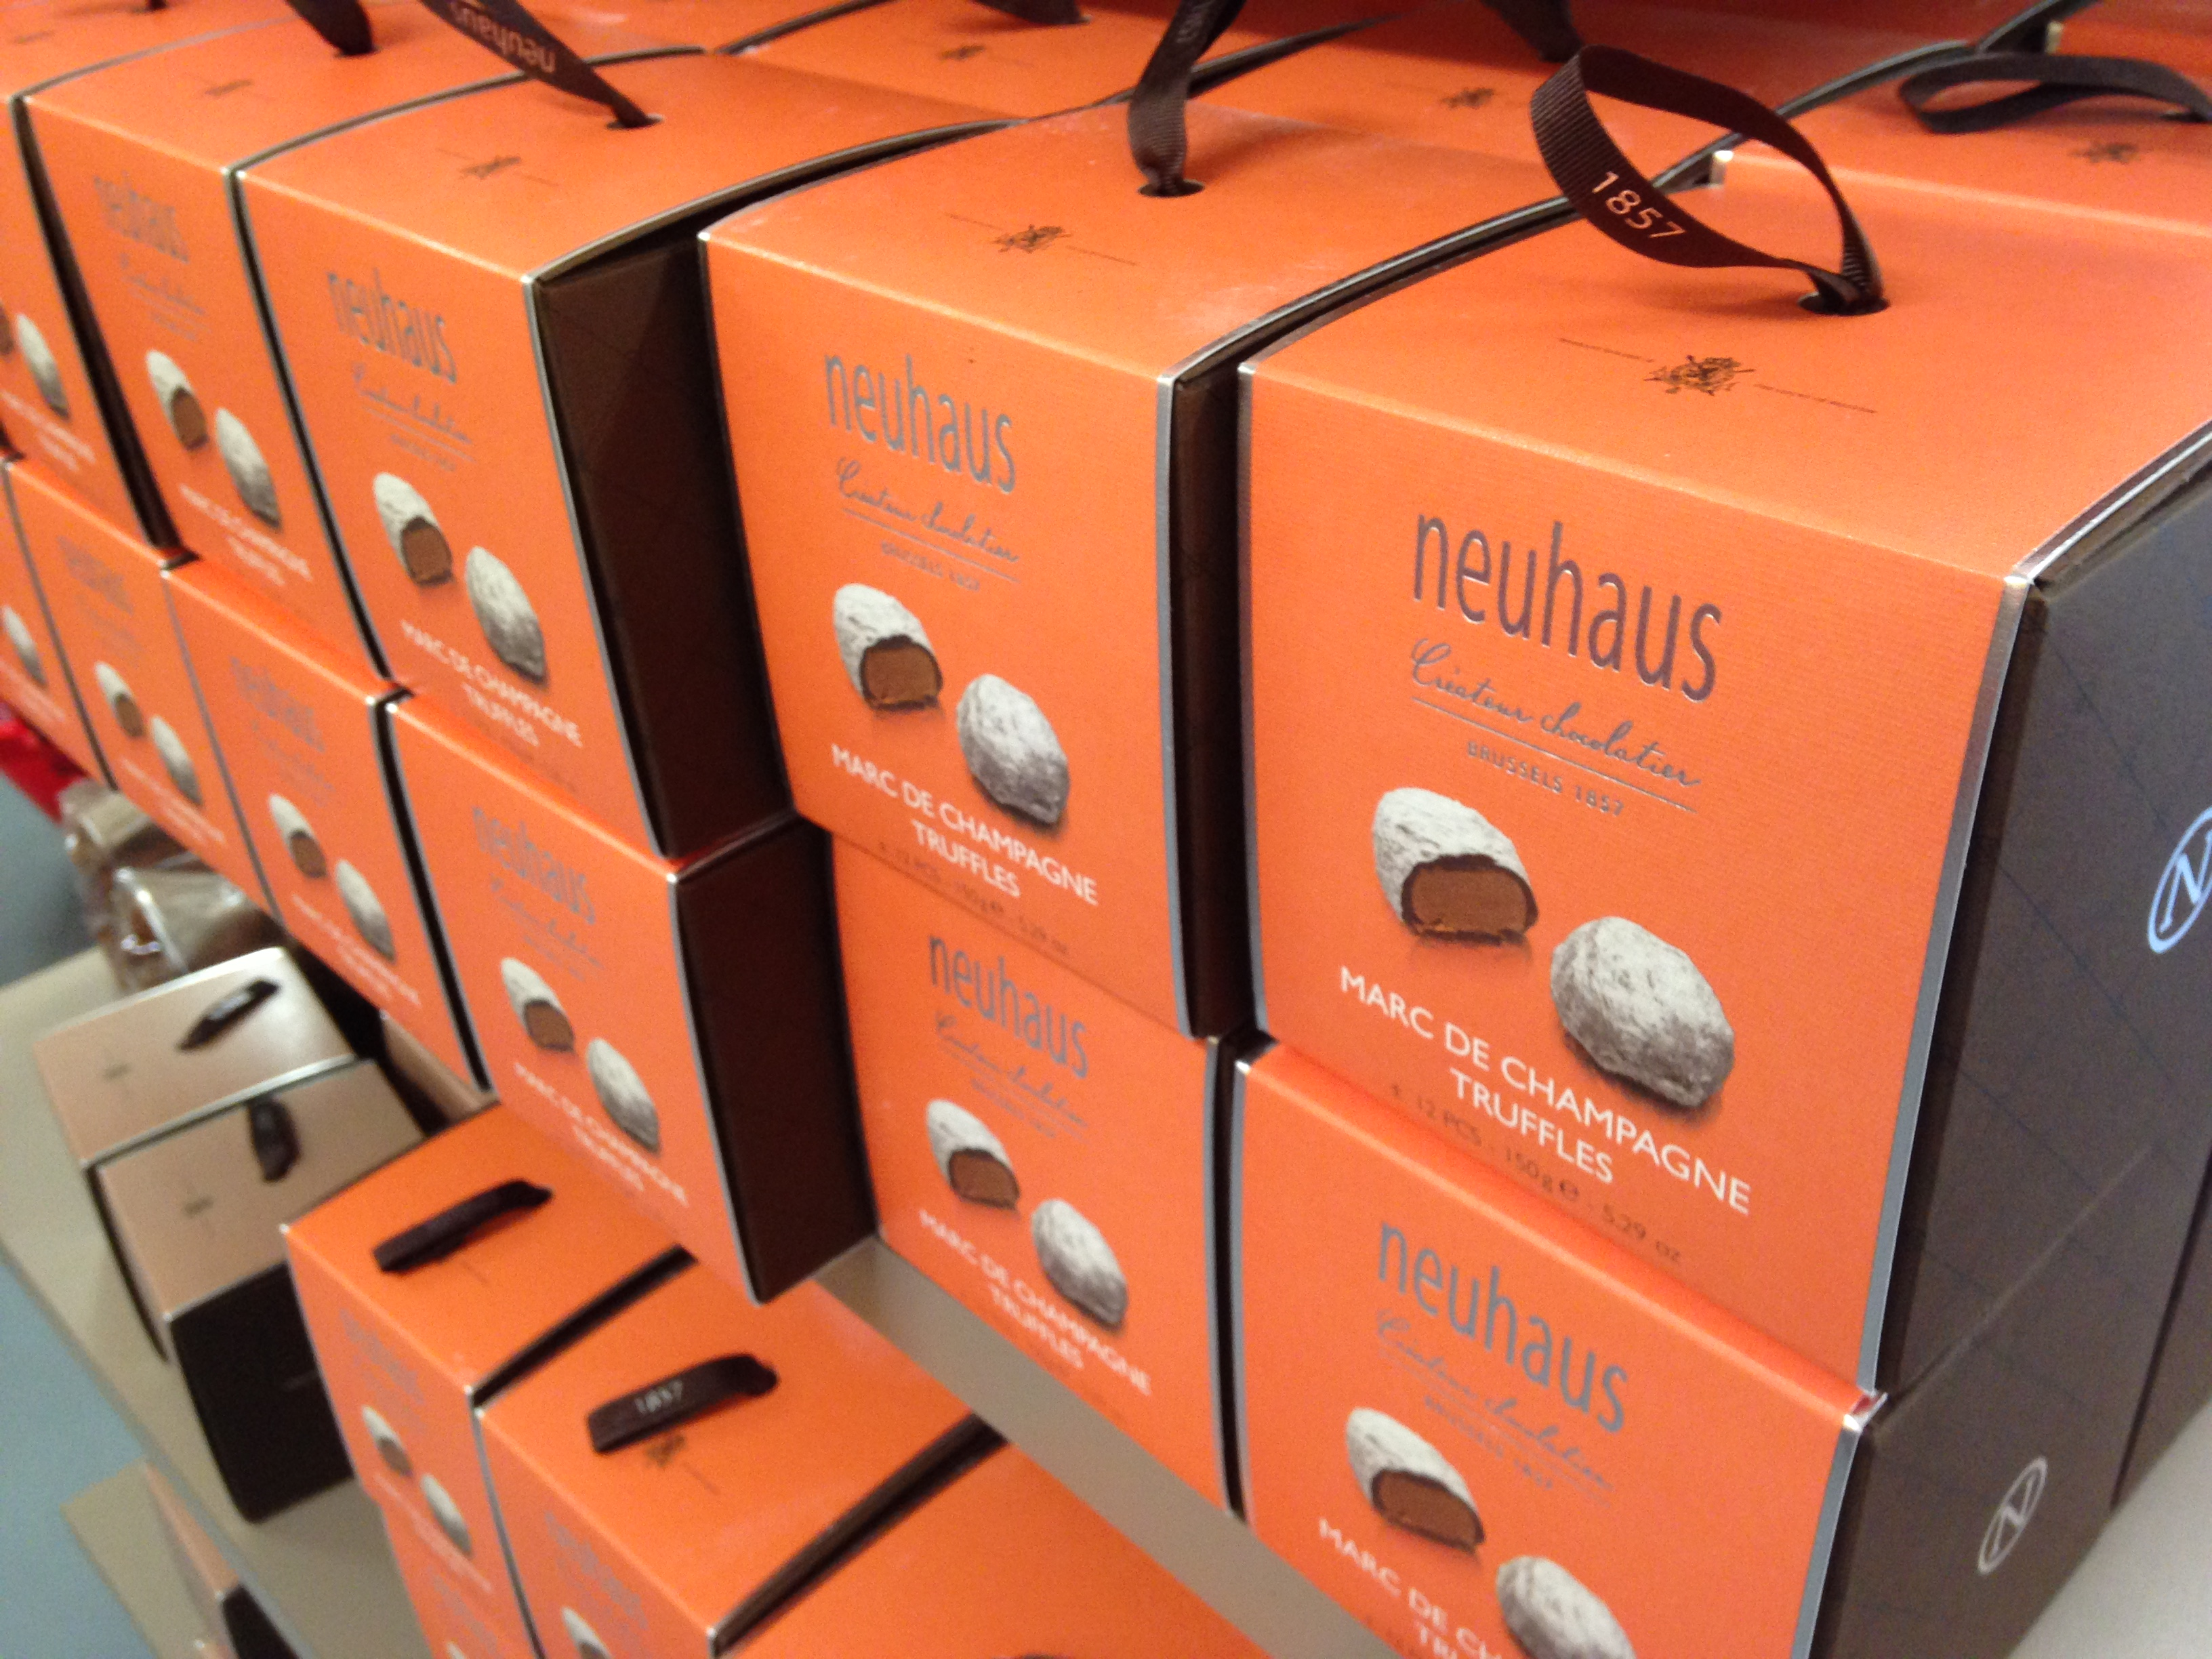 Chocolat Neuhaus magasin d'usine